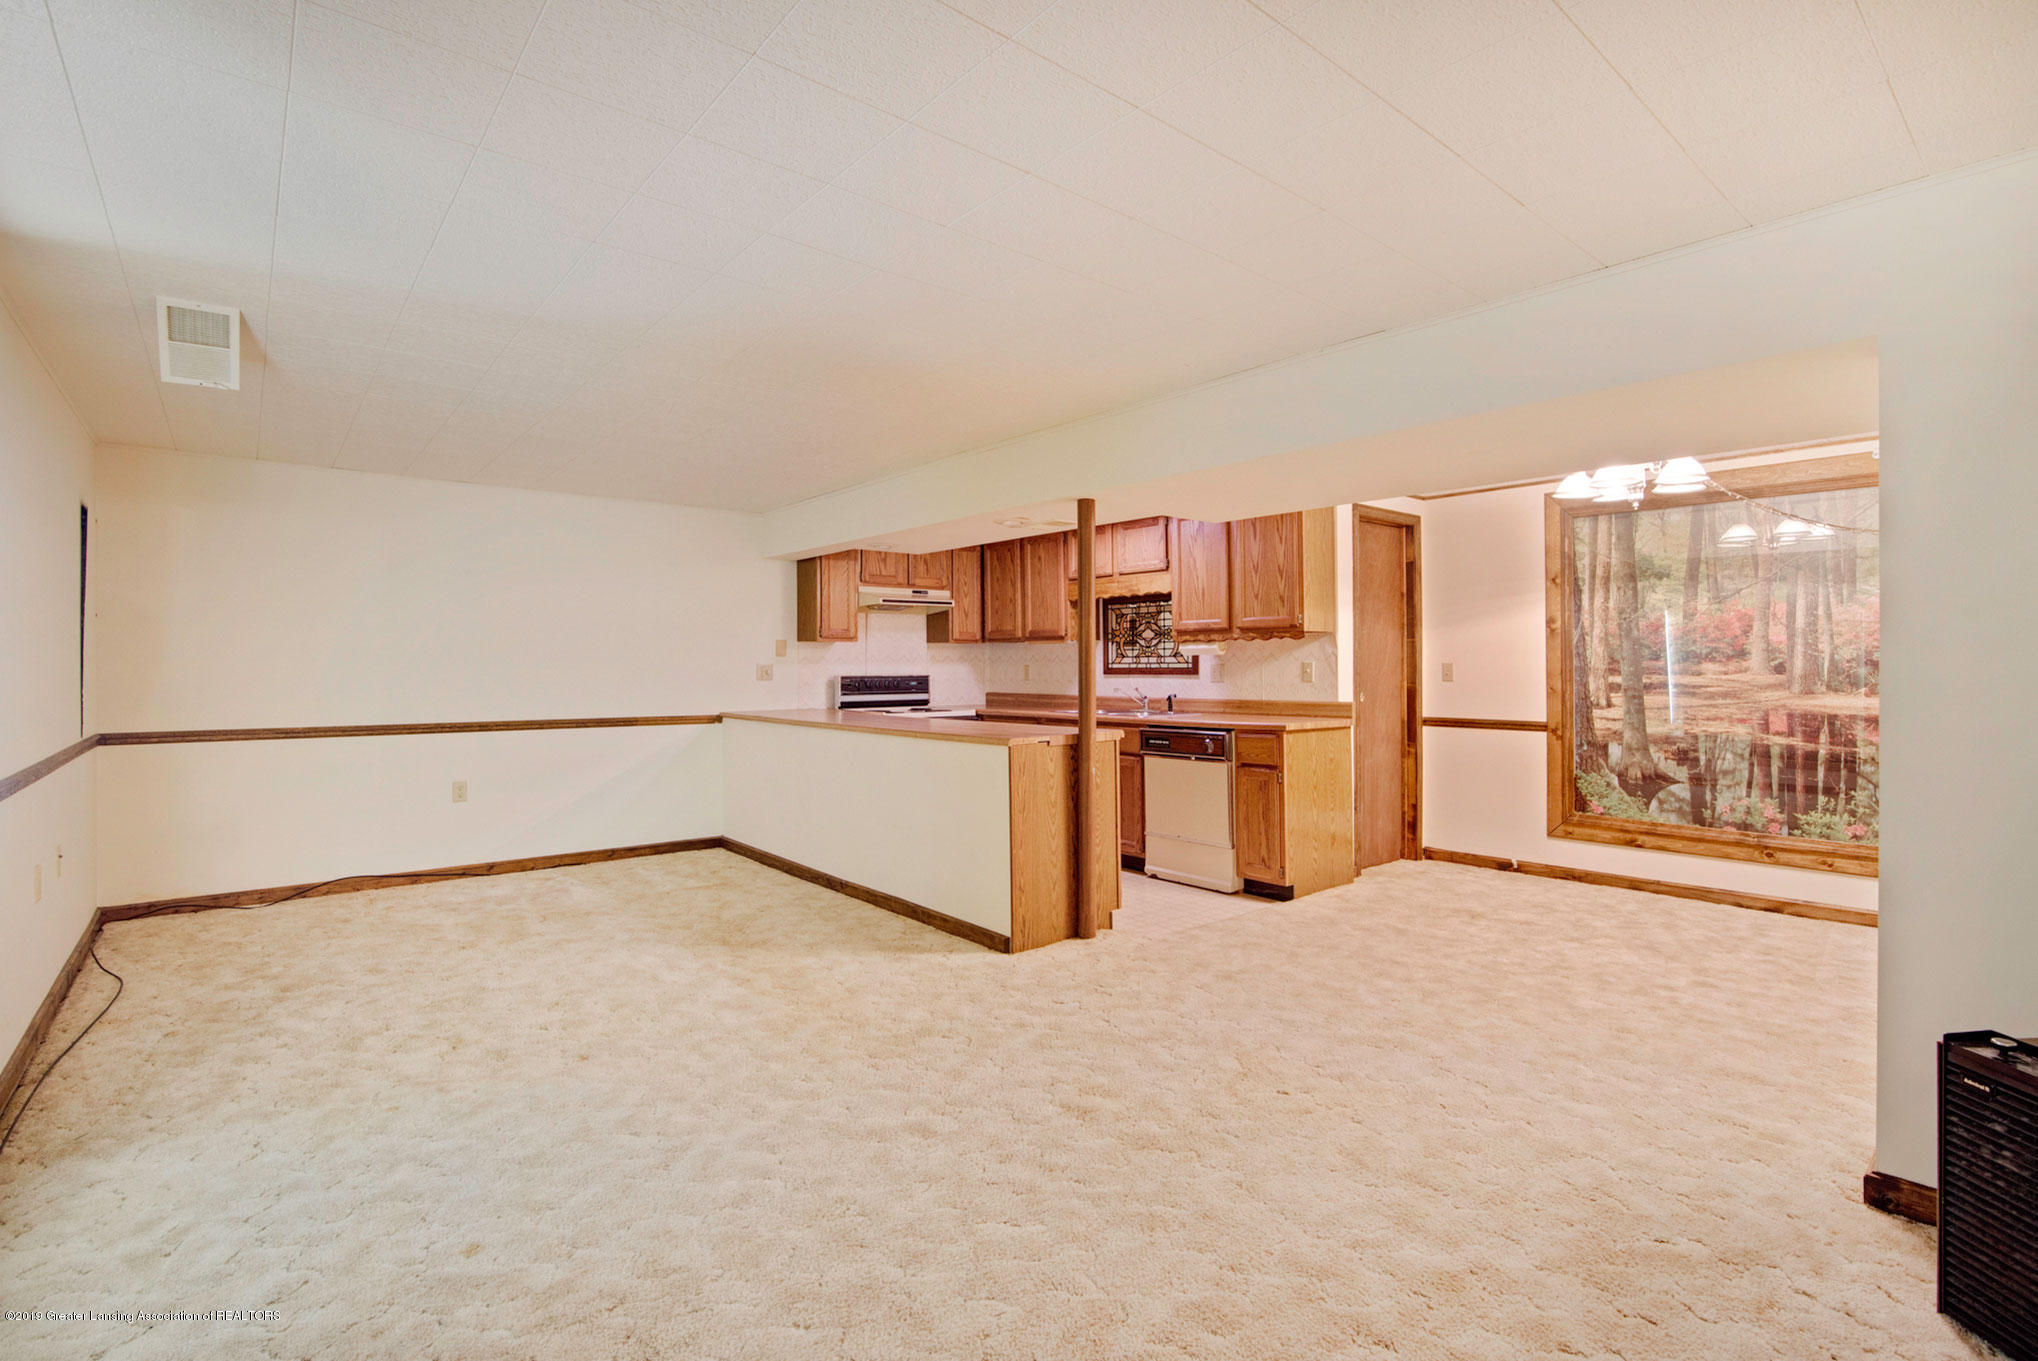 2800 Trudy Ln Unit 21 - Lower Level - 17